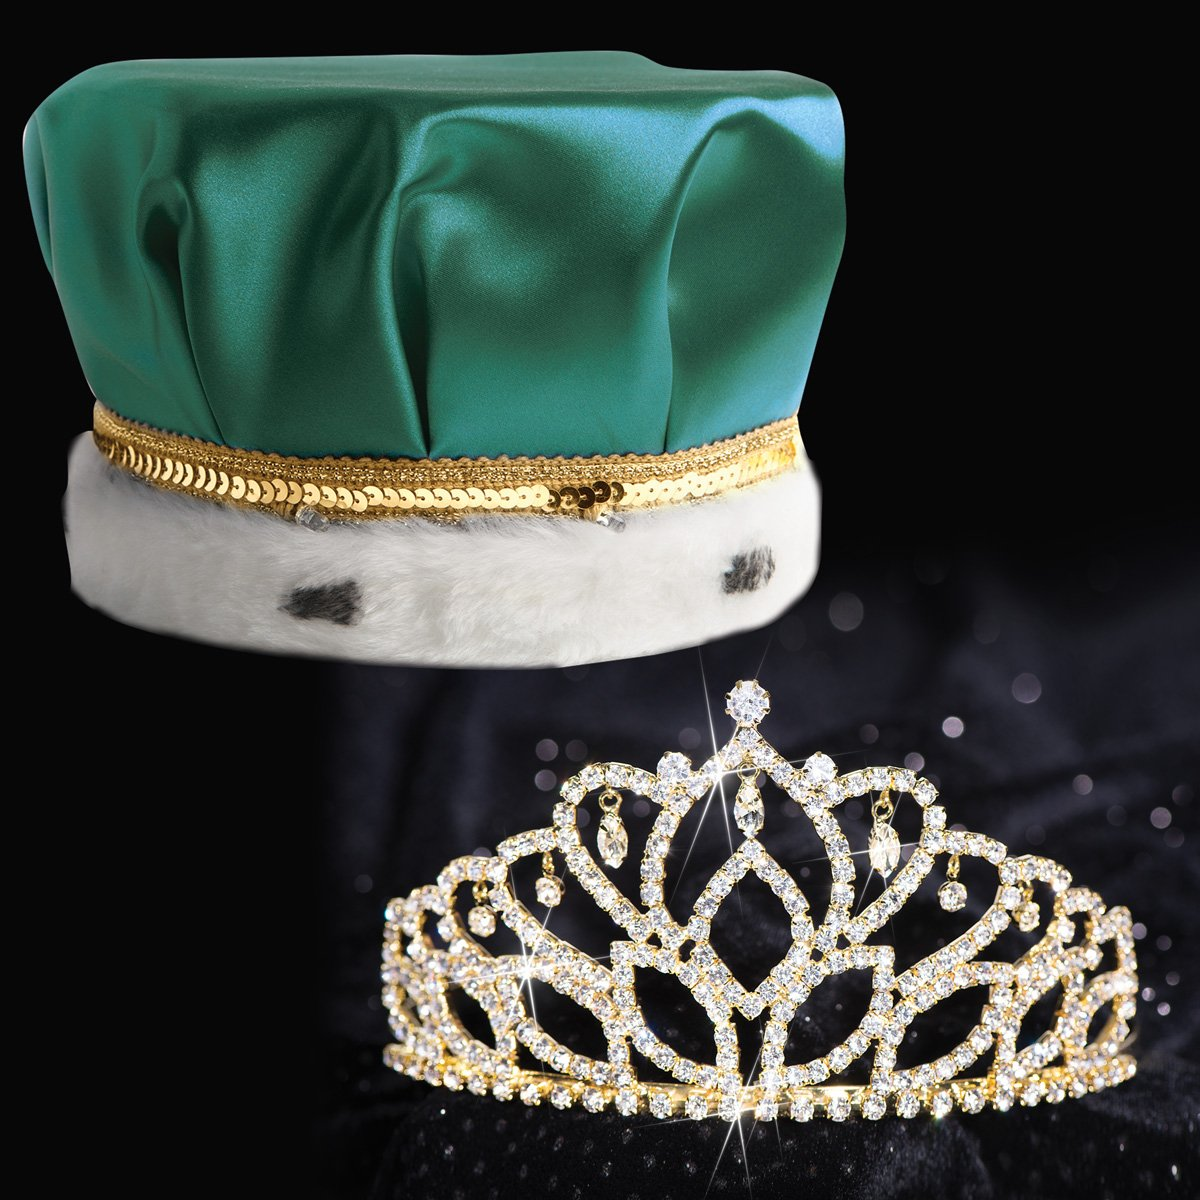 Mirabella Royalty Set, 2 7/8 inch High Gold Mirabella Tiara and Green Satin Crown with Sequin Band, White Fur